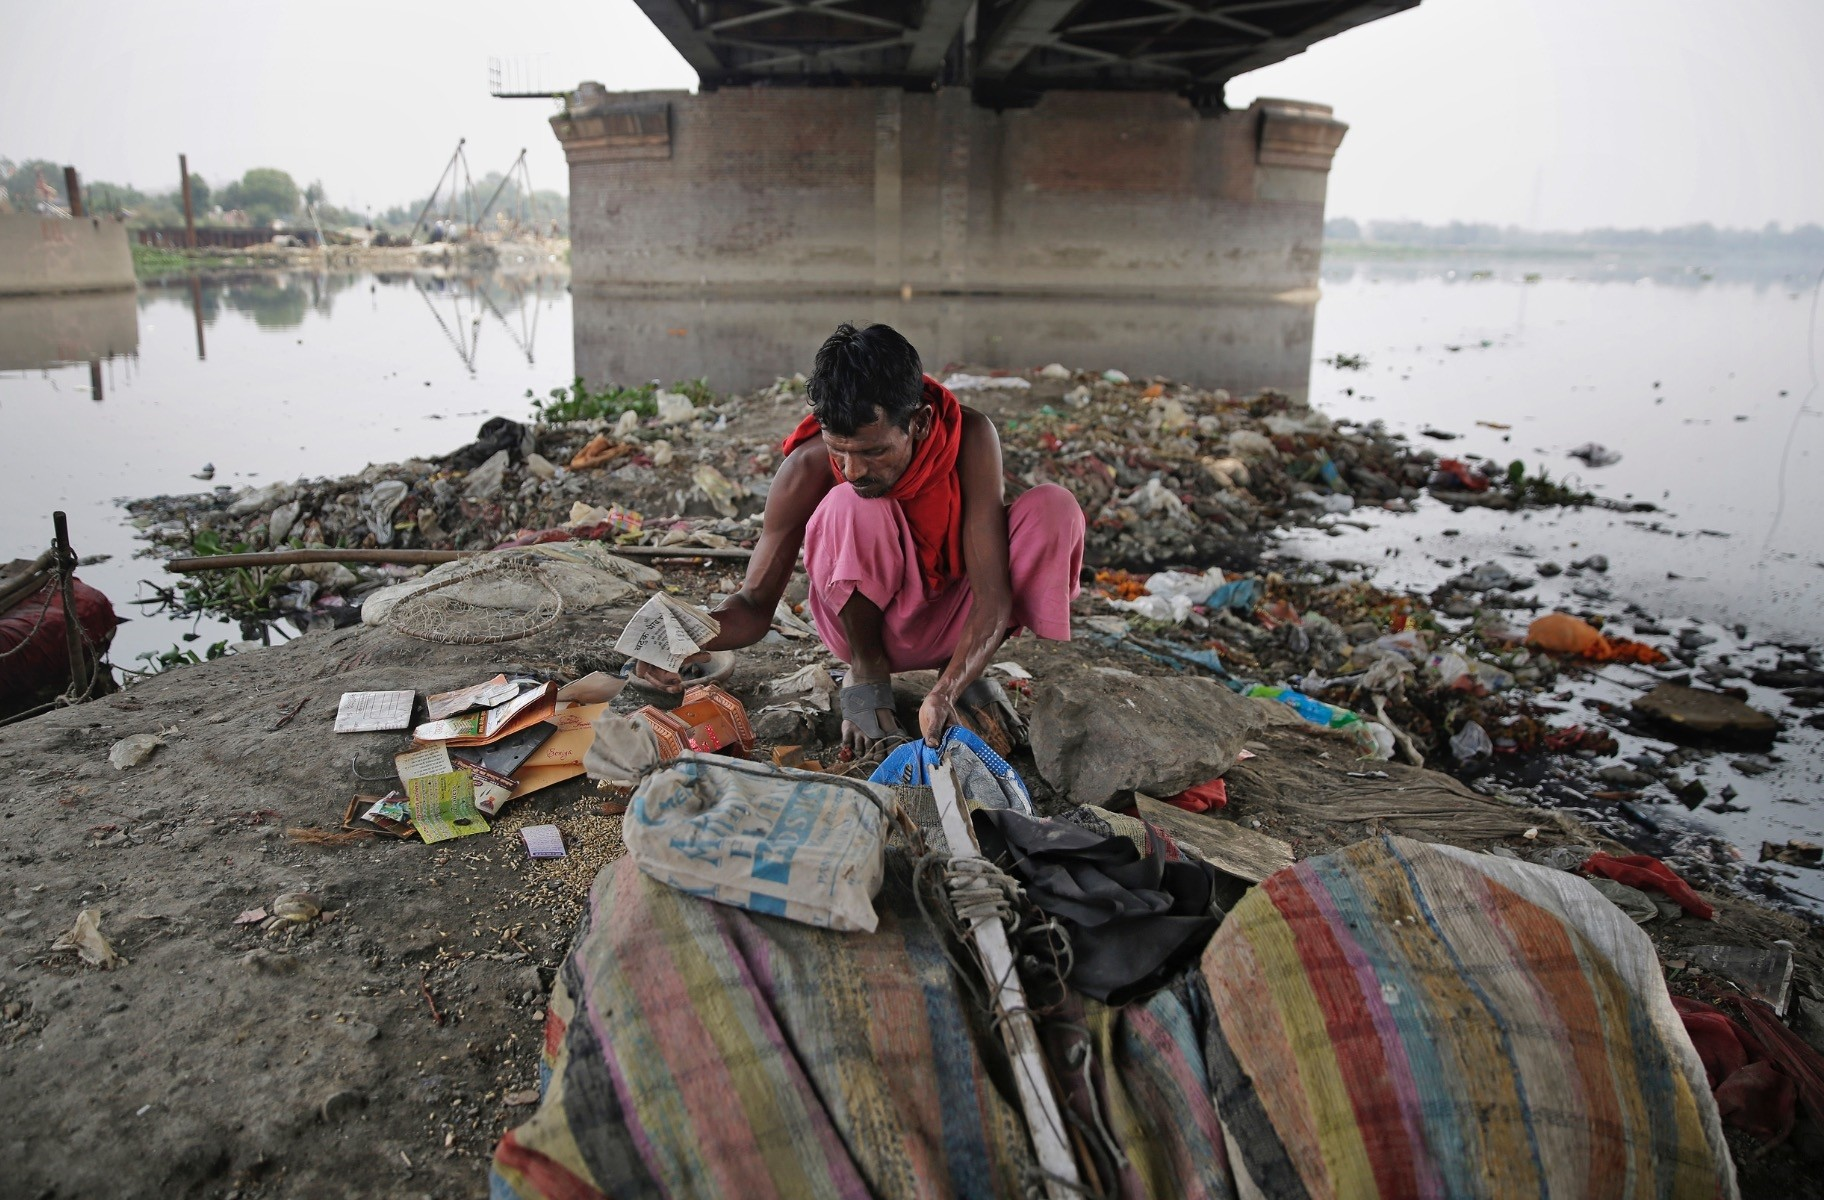 Ram Nath, 40, sorts reusable trash he fished out from Yamuna, Indiau2019s sacred river that flows through the capital of New Delhi.